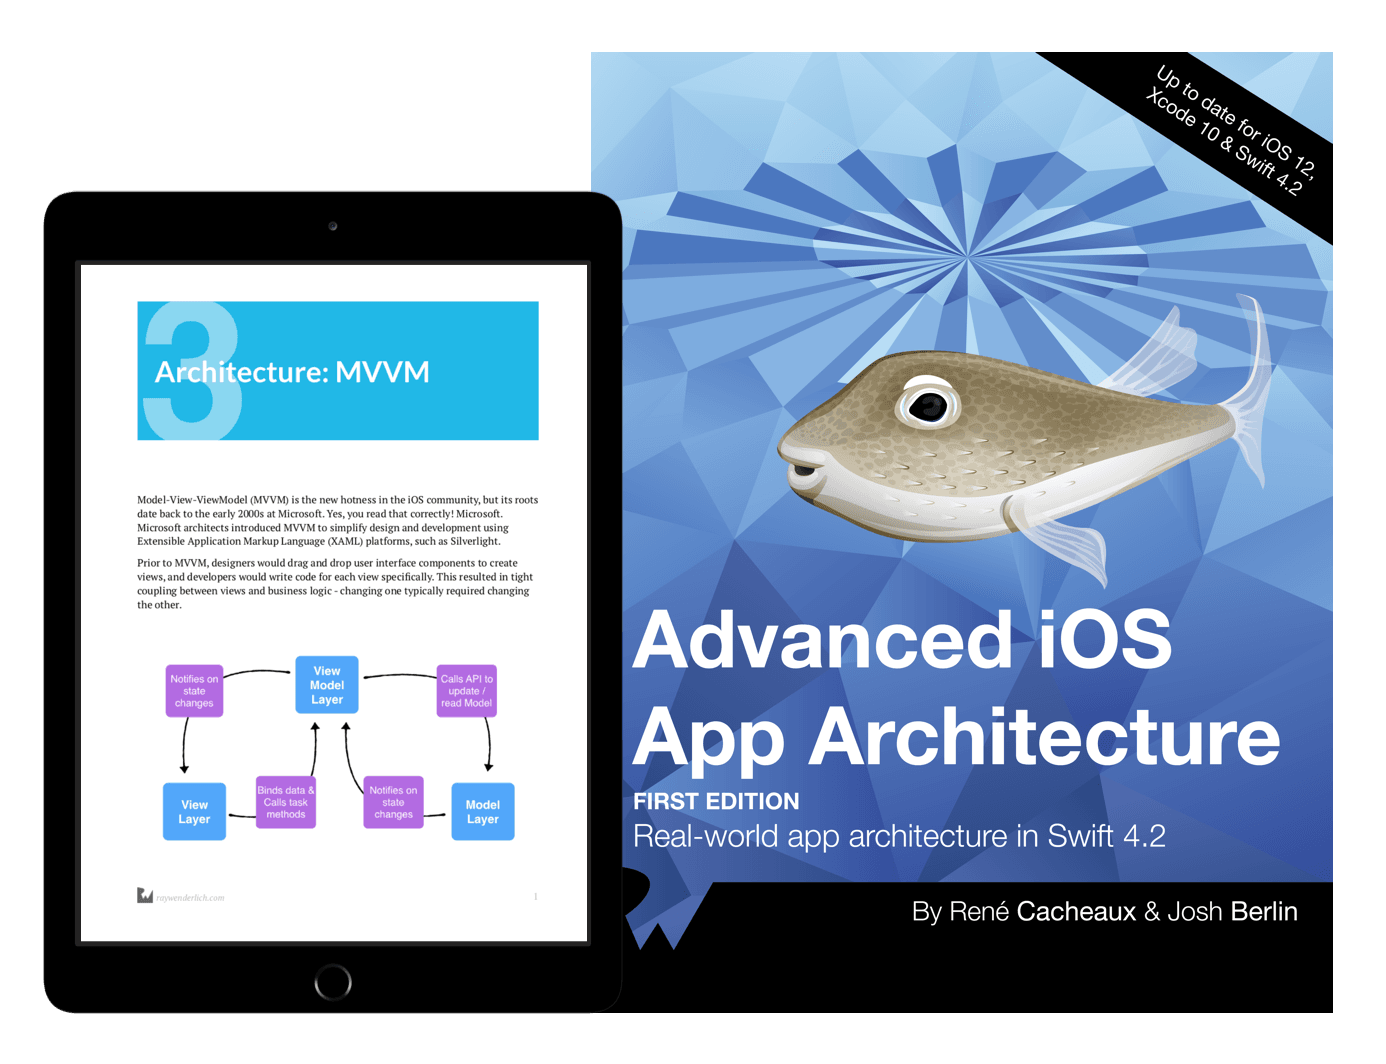 Advanced iOS App Architecture